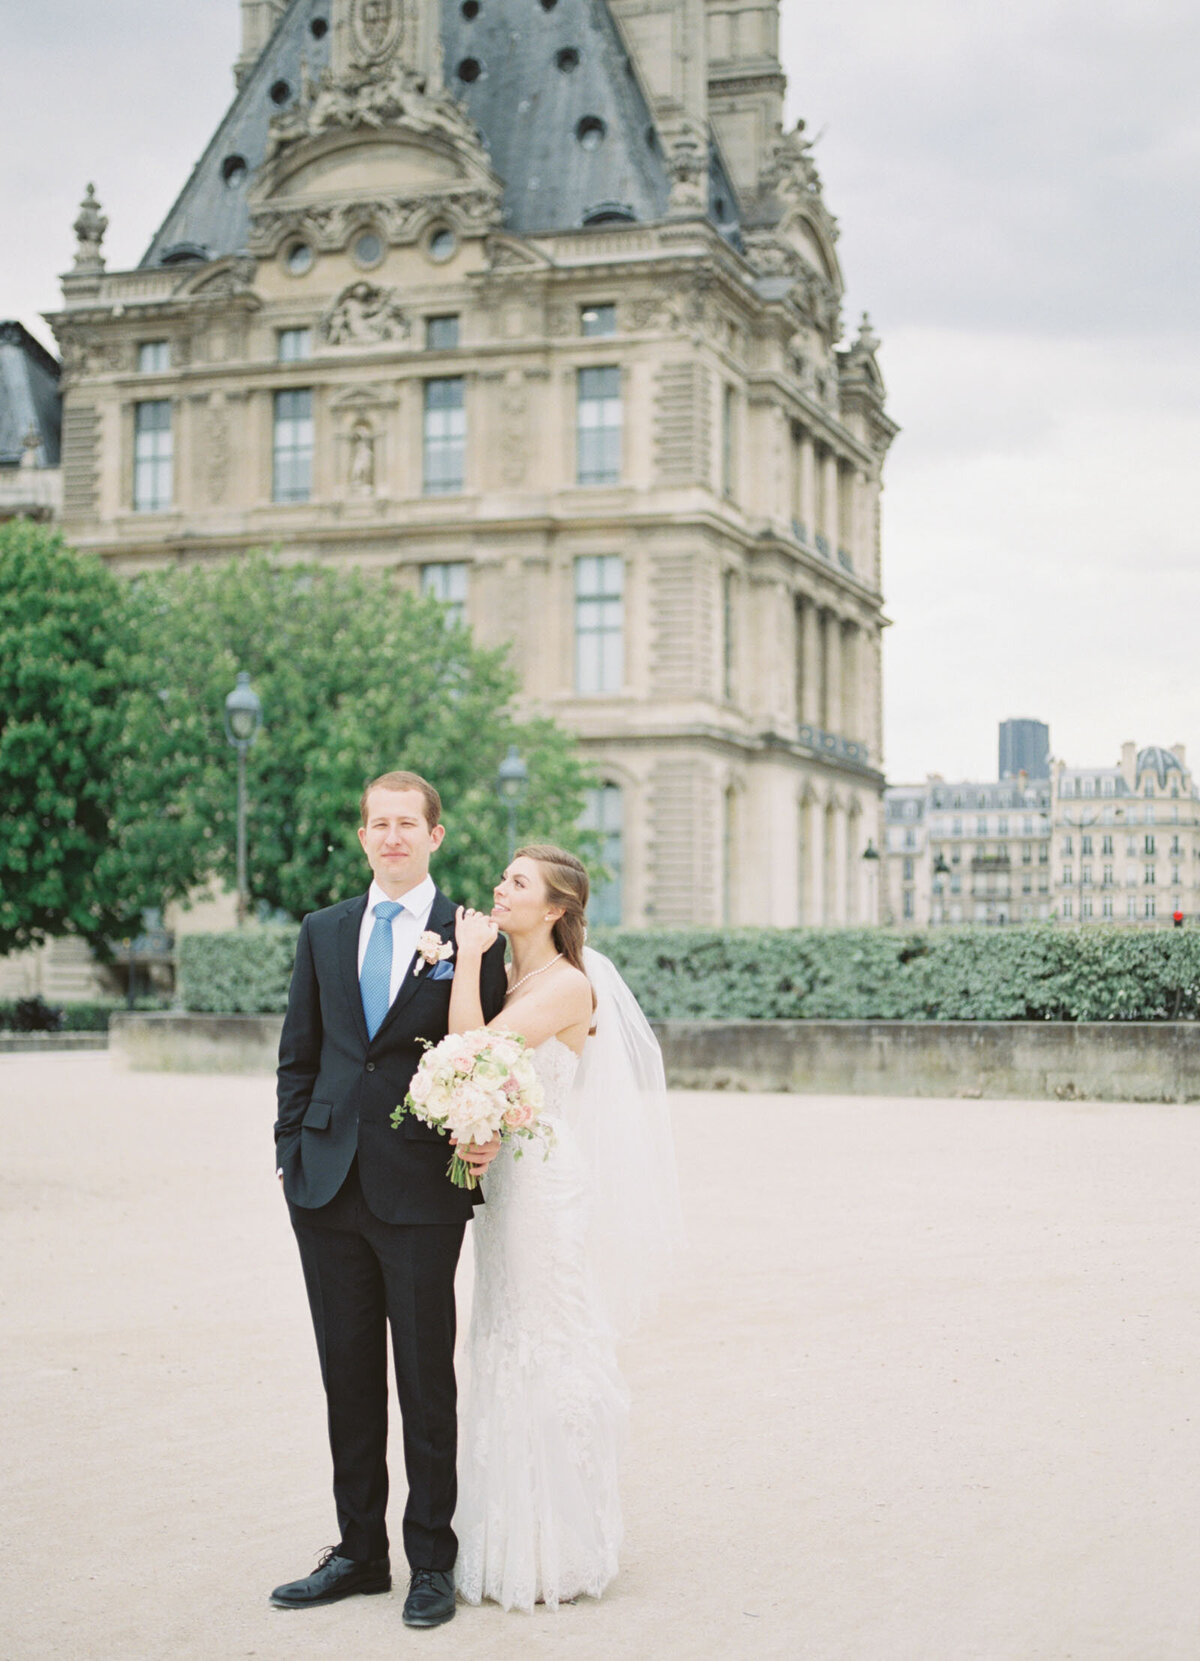 marcelaploskerphotography-paris_wedding-18